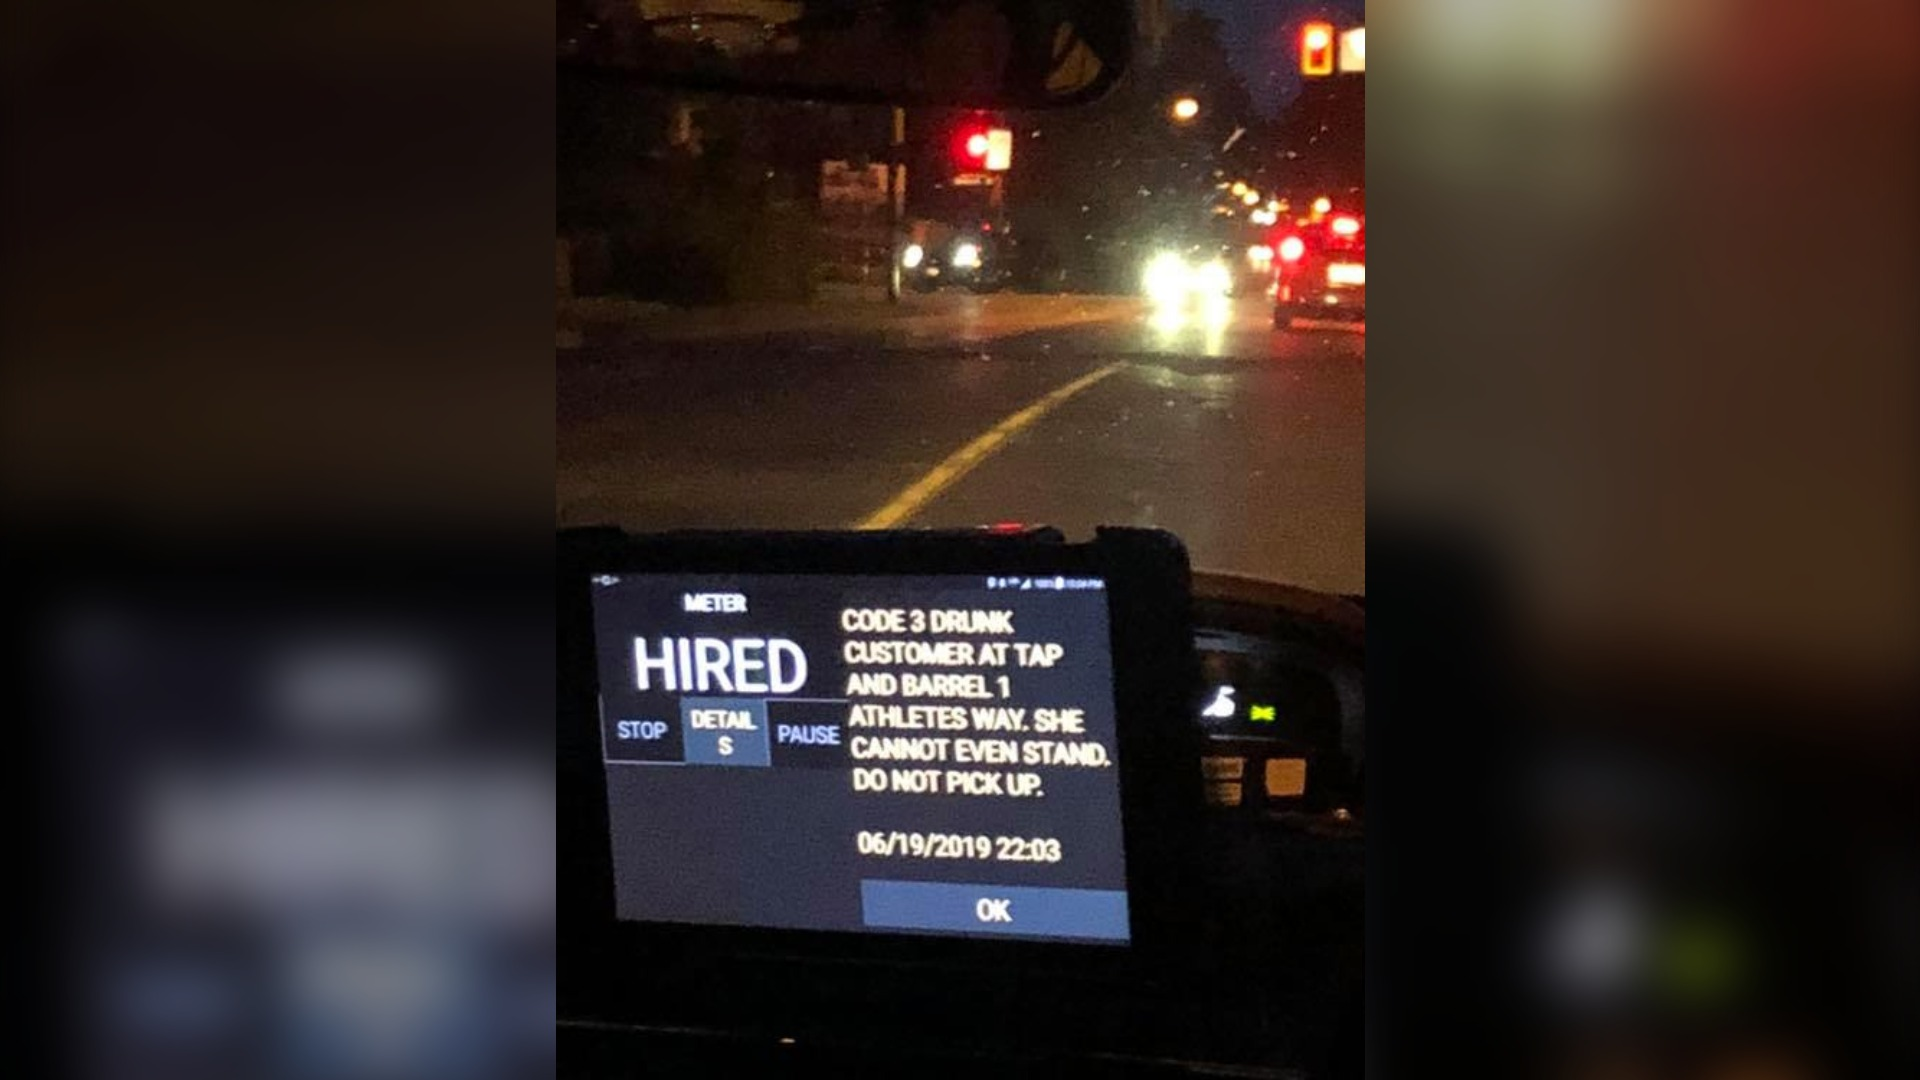 Canadian Cab Guelph >> Drunk Customer Do Not Pick Up Cab Passenger Alarmed By